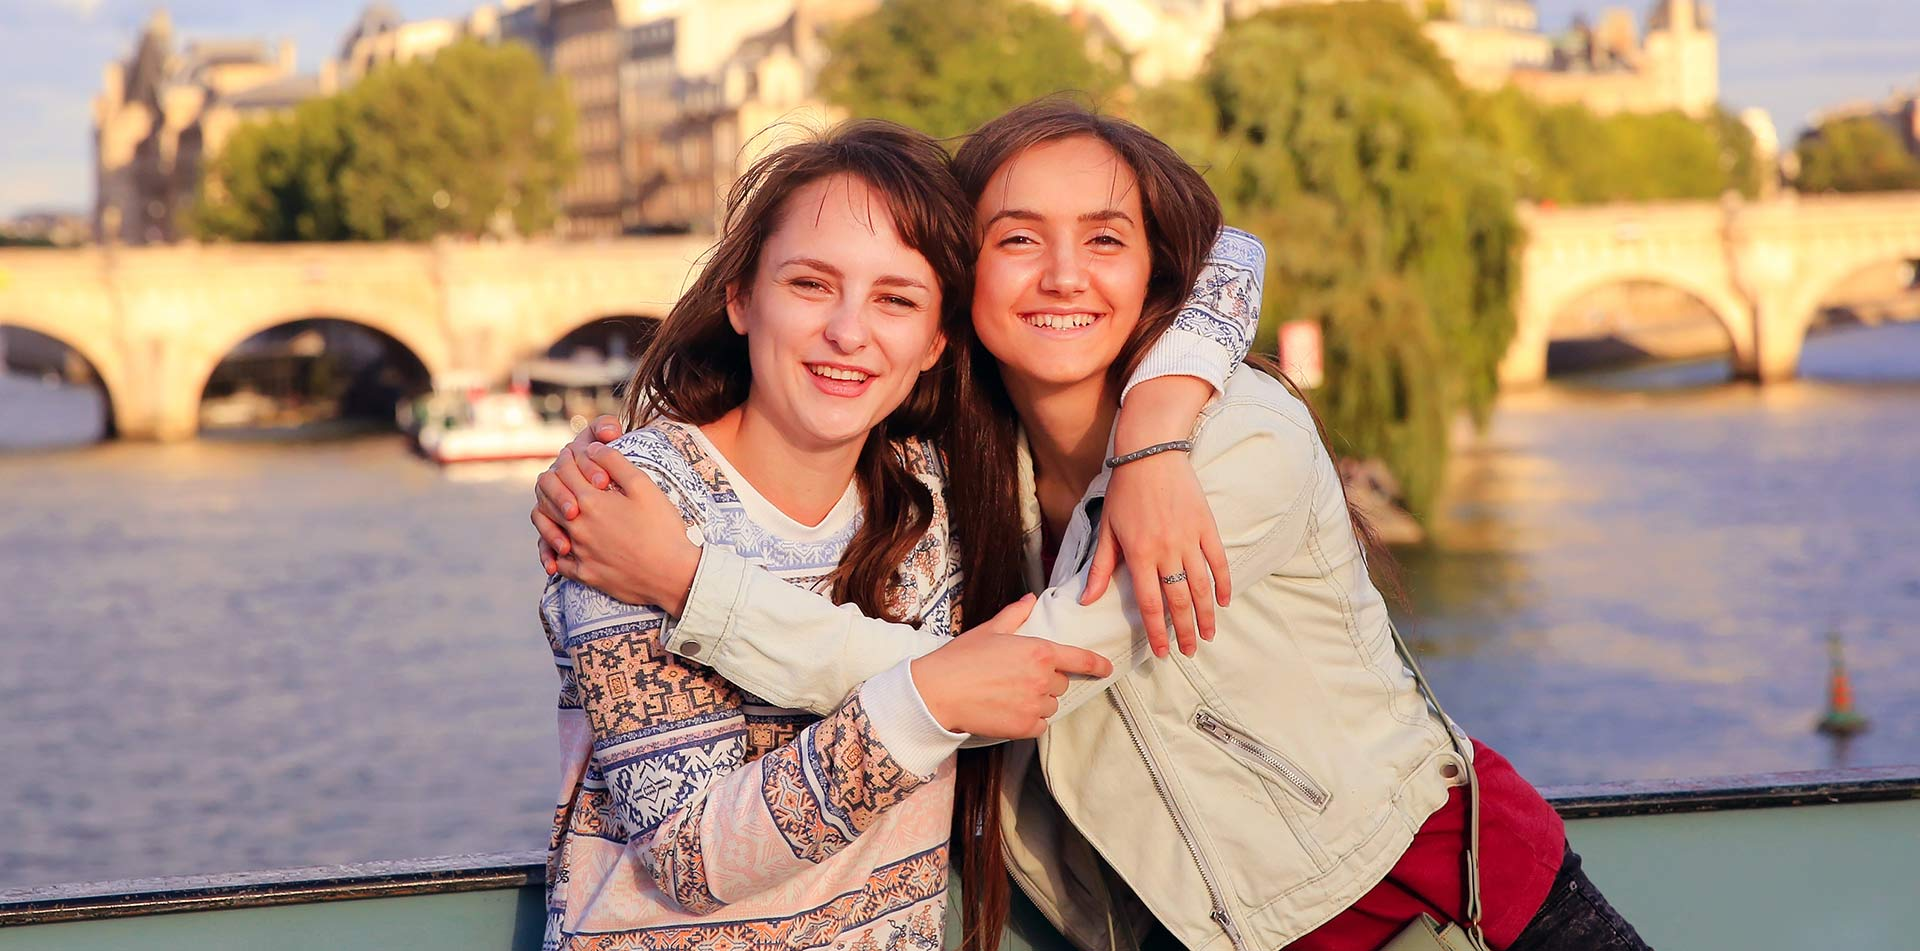 Europe France Paris young girls smiling and hugging with the Siene River in background - luxury vacation destinations